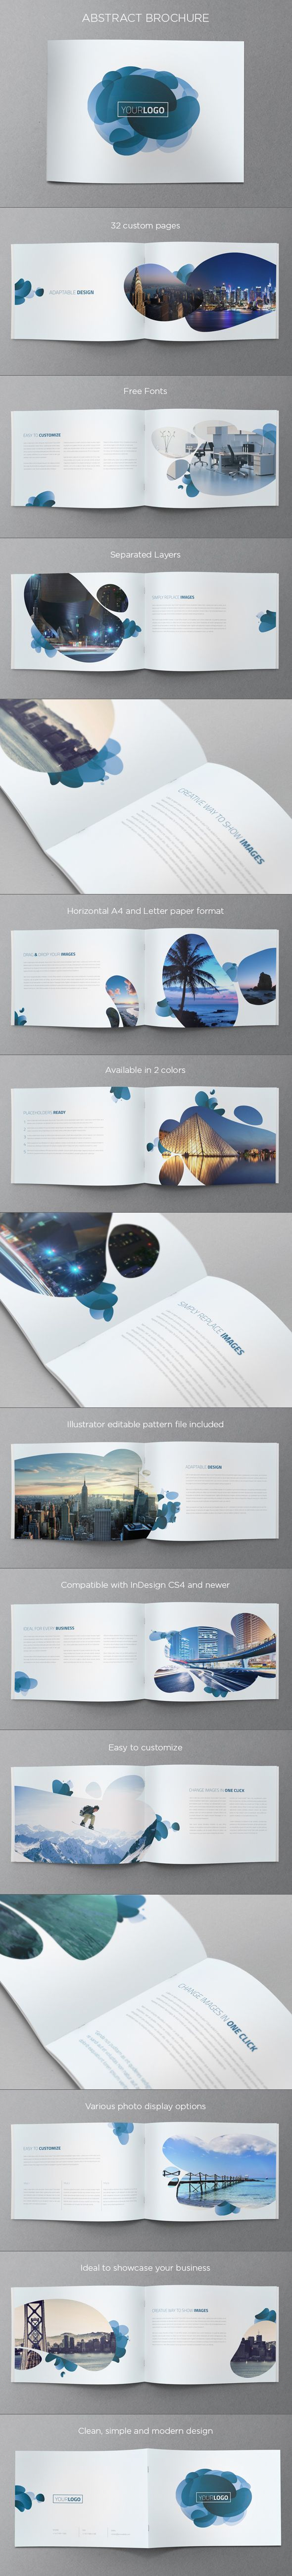 Abstract Modern Brochure. Download here: http://graphicriver.net/item/abstract-modern-brochure/5234402 #design #brochure: